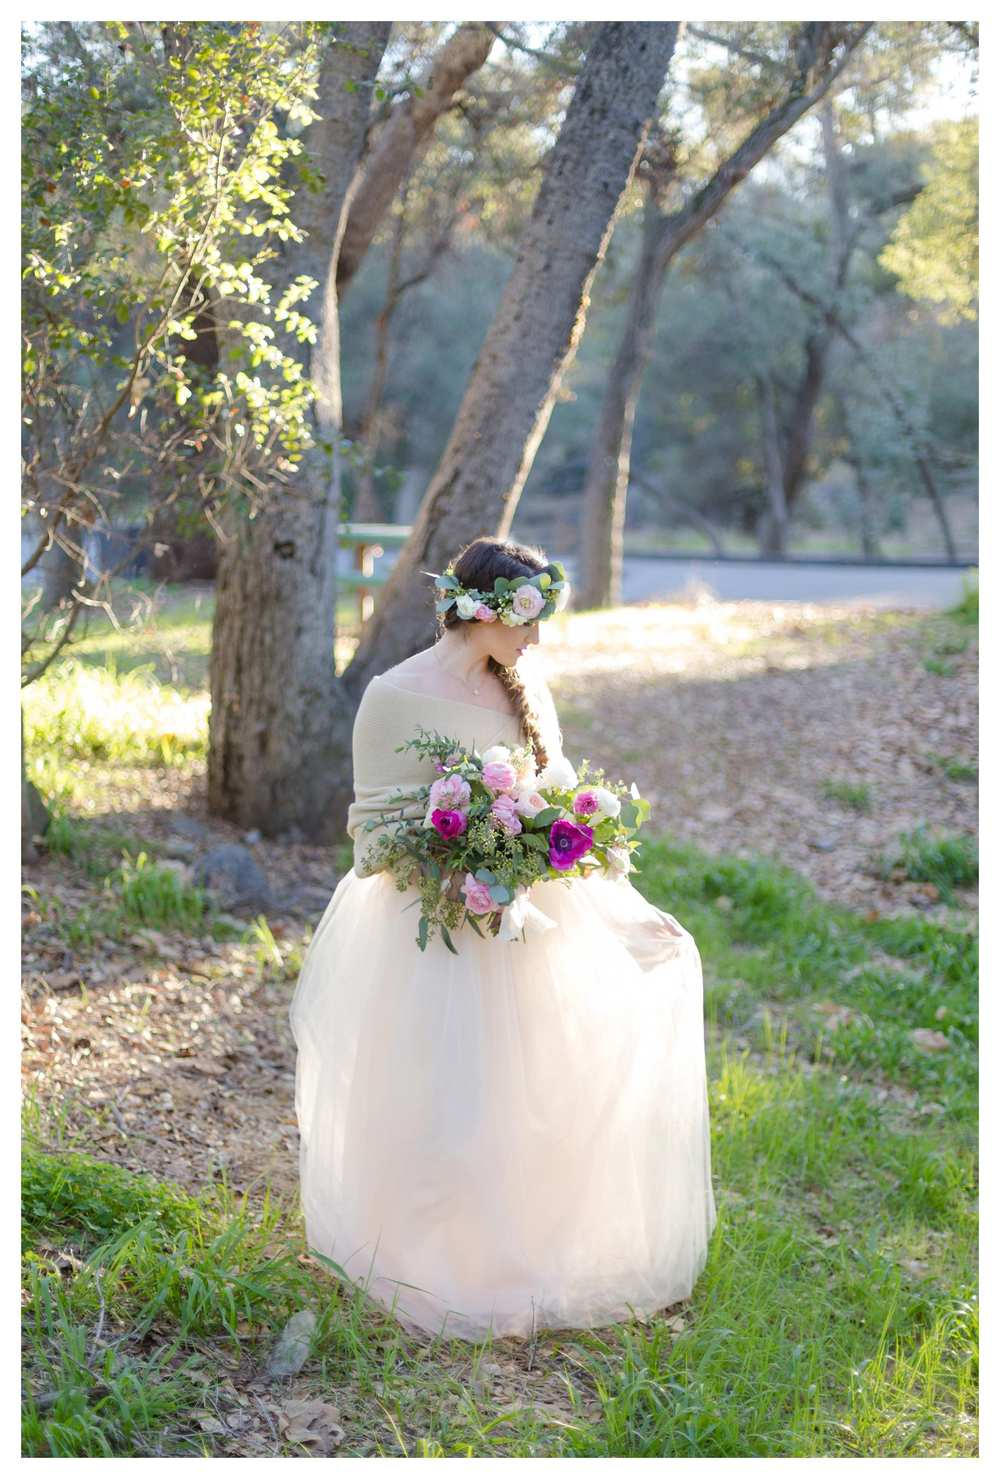 Shabby Apple Tulle Skirt Photo Session in Escondido-8708.jpg